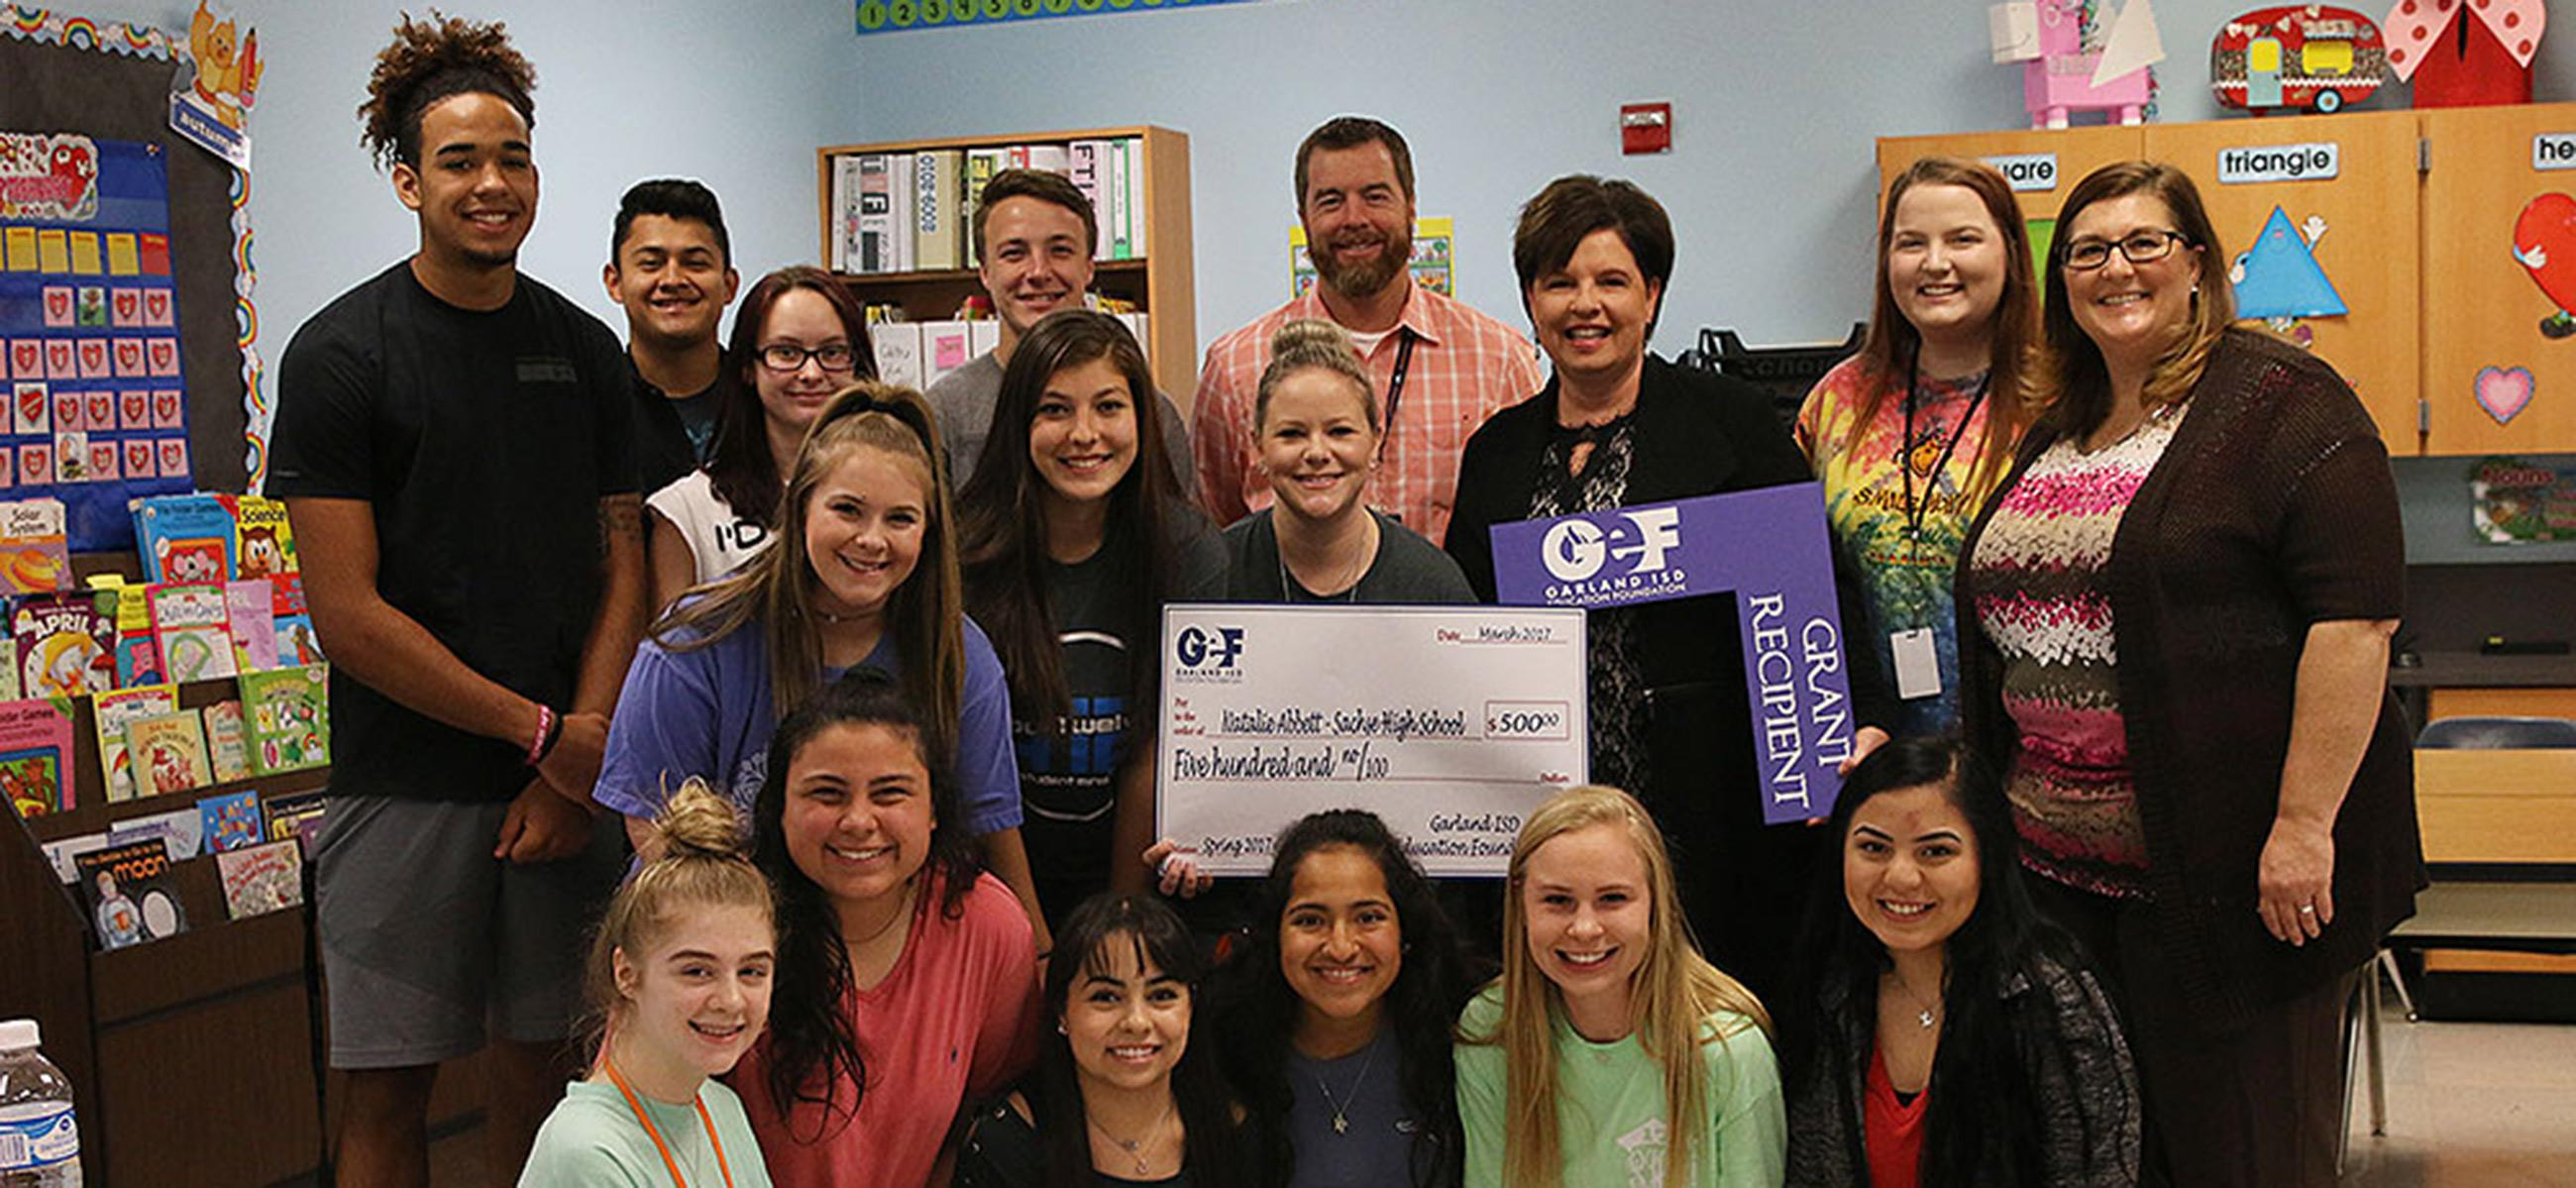 2016 Education Foundation Grant awarded to teacher and classroom